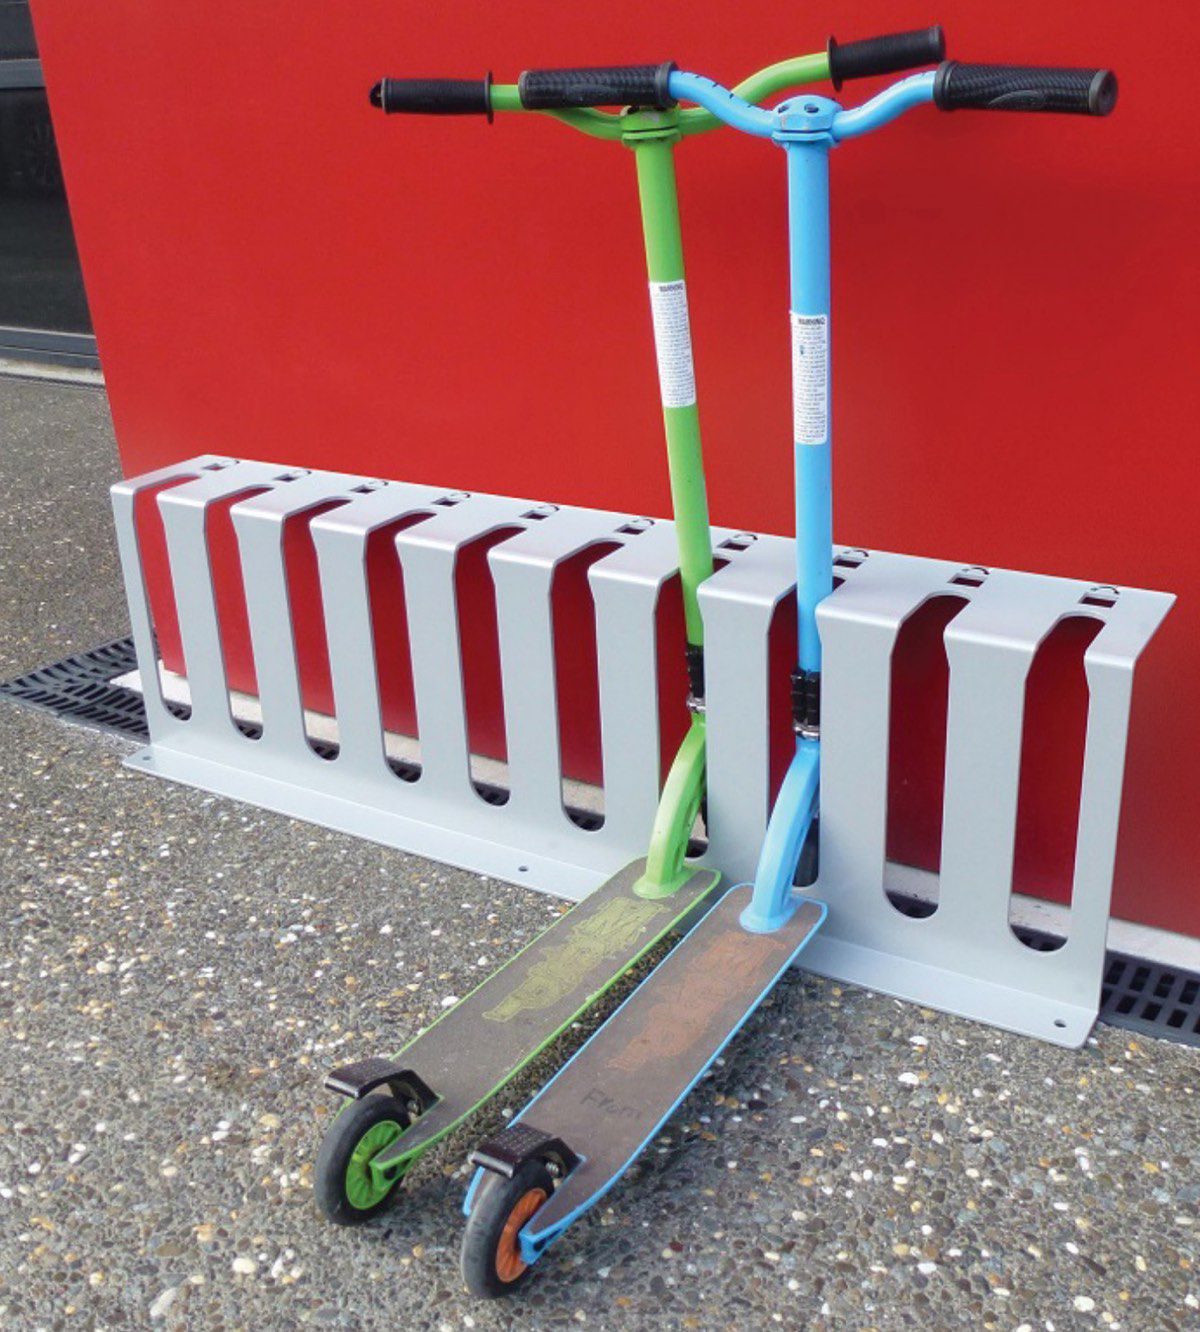 Jump scooter parking